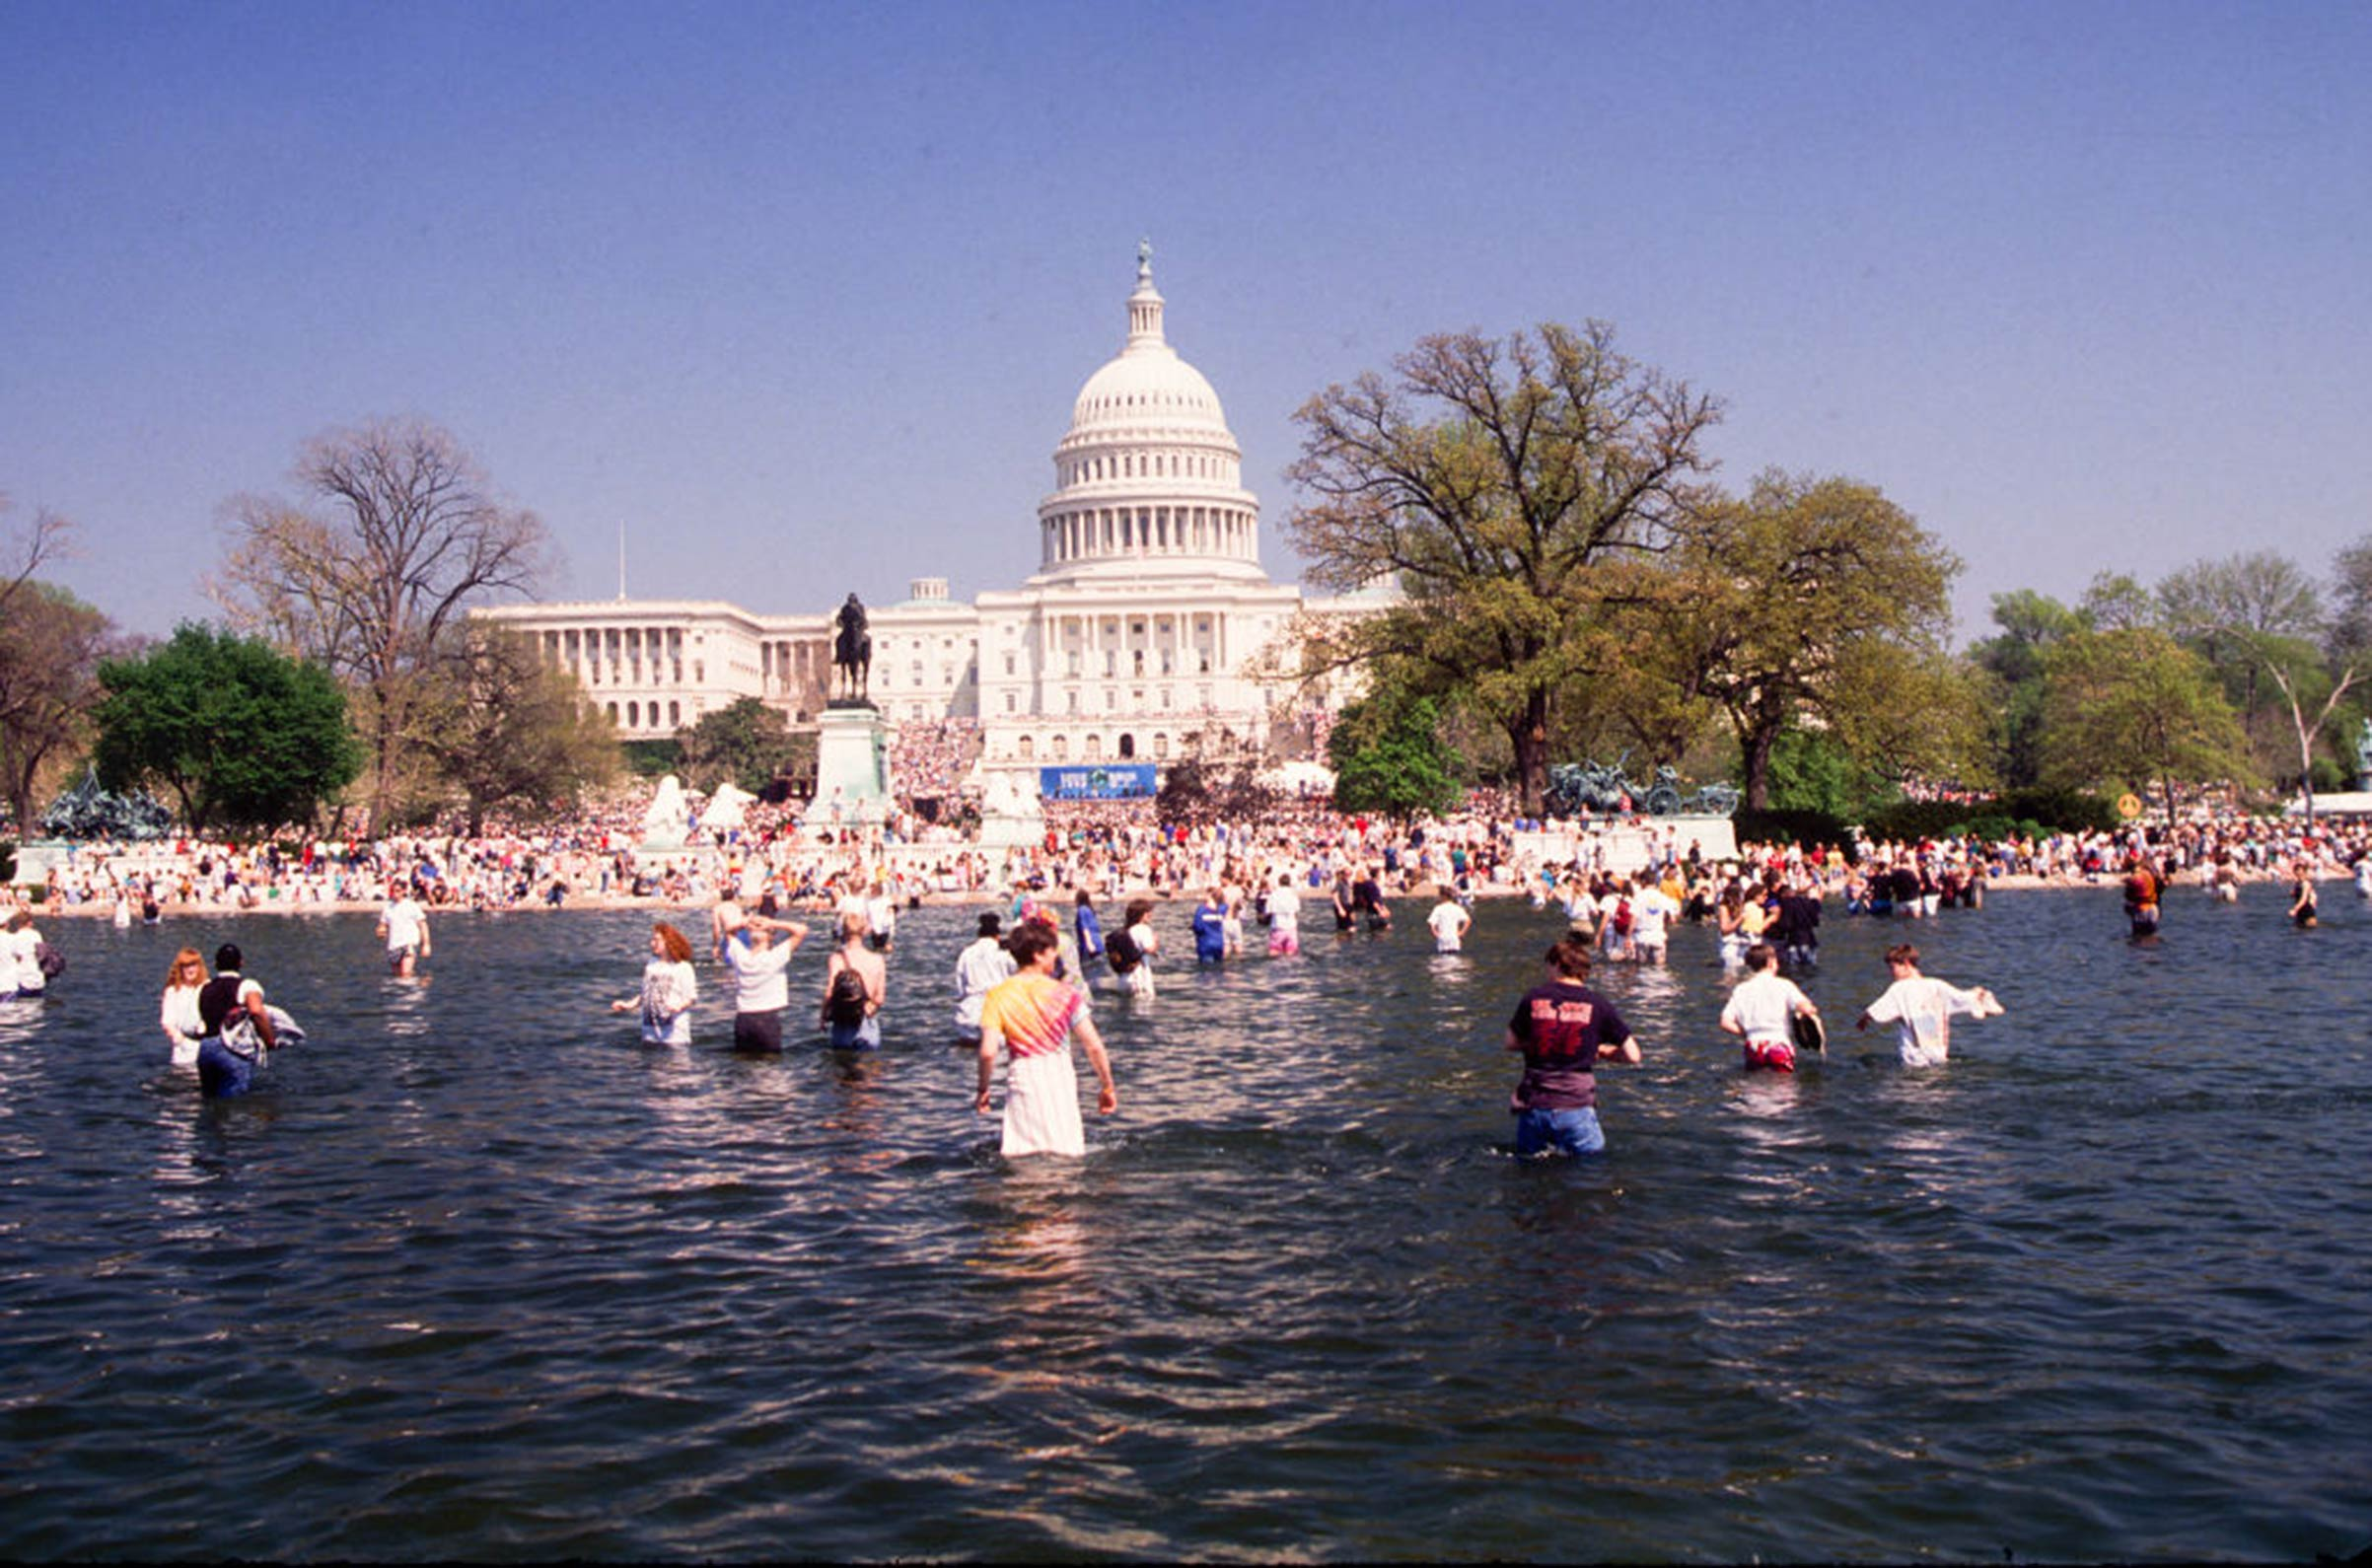 View of the crowd gathering for an Earth Day rally on the U.S. Capitol grounds, some in the Capitol Reflecting Pool on April 22, 1990, in Washington D.C.